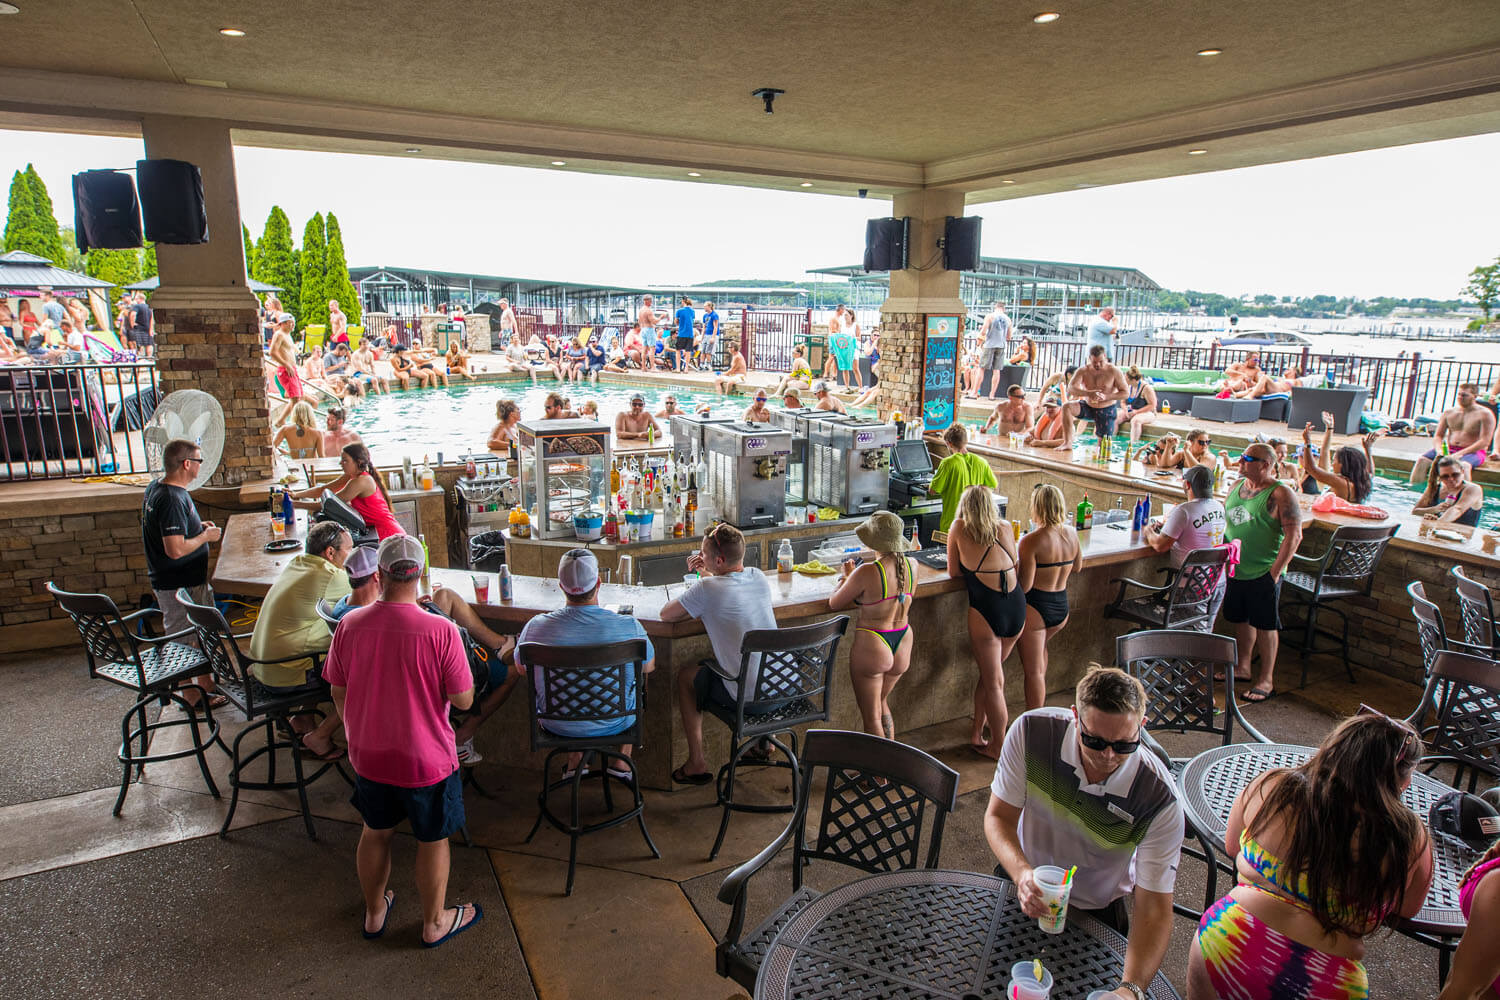 Customers enjoy the outdoor bar and pool at the horny toad entertainment complex at camden on the lake resort